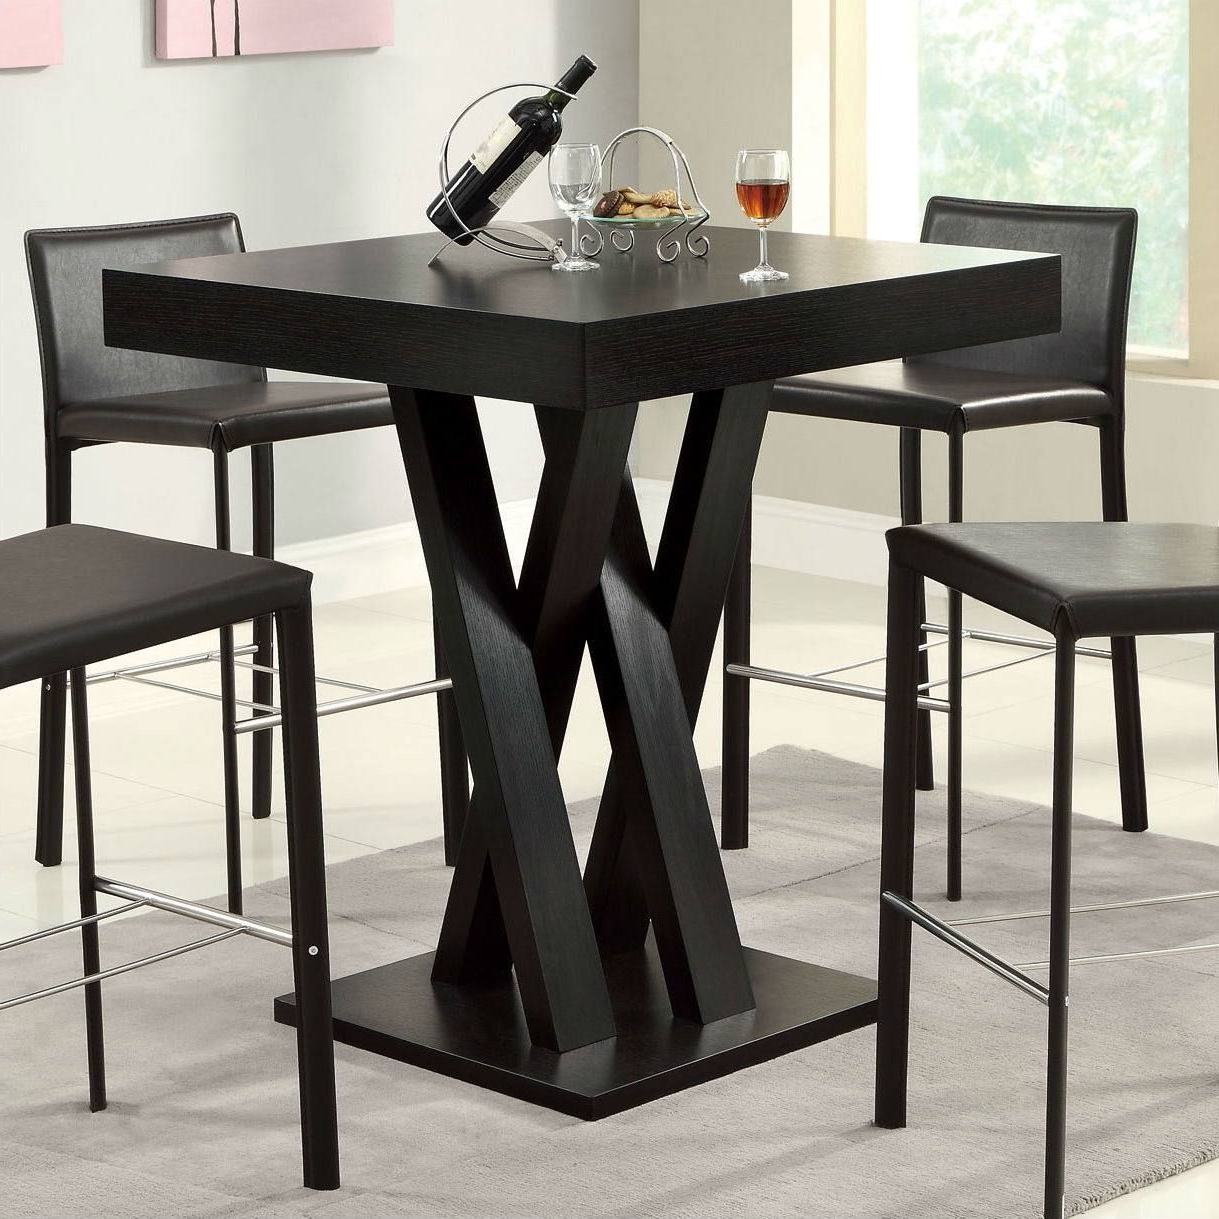 2018 Modern 40 Inch High Square Dining Table In Dark Cappuccino Inside Cappuccino Finish Wood Classic Casual Dining Tables (View 2 of 30)